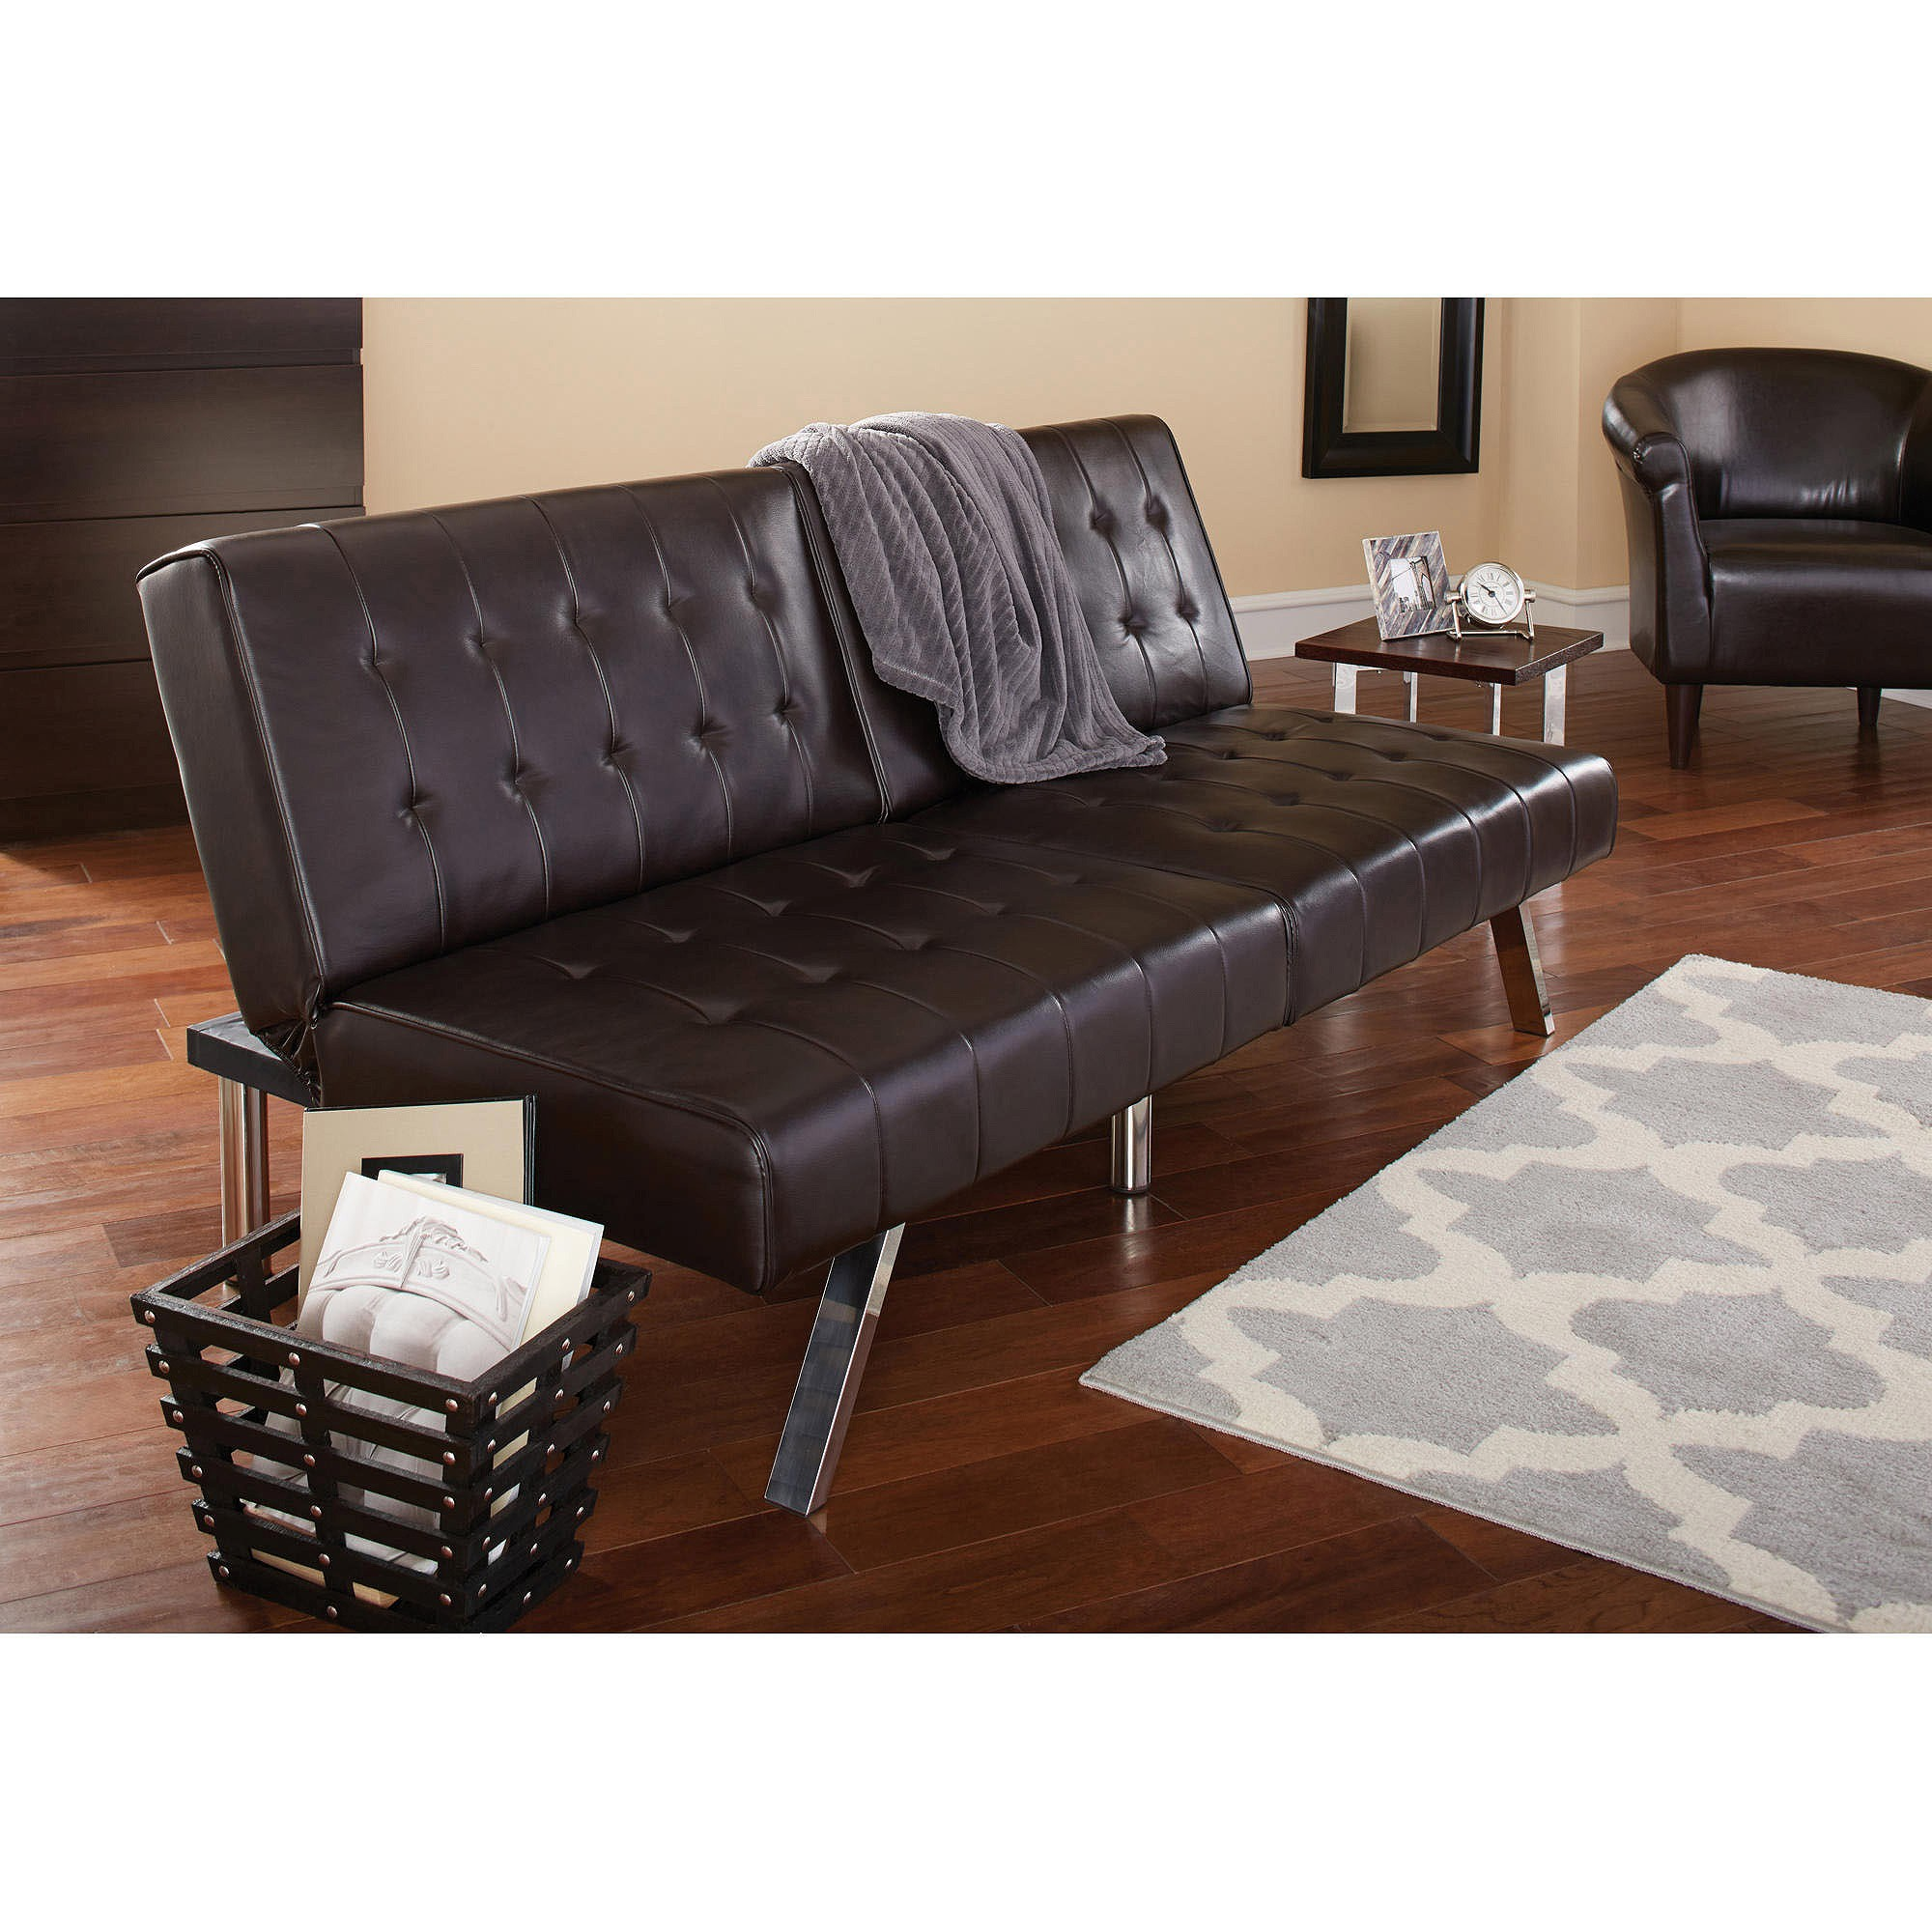 Walmart Leather sofa Luxury Mainstays Morgan Faux Leather Tufted Convertible Futon Brown Pattern